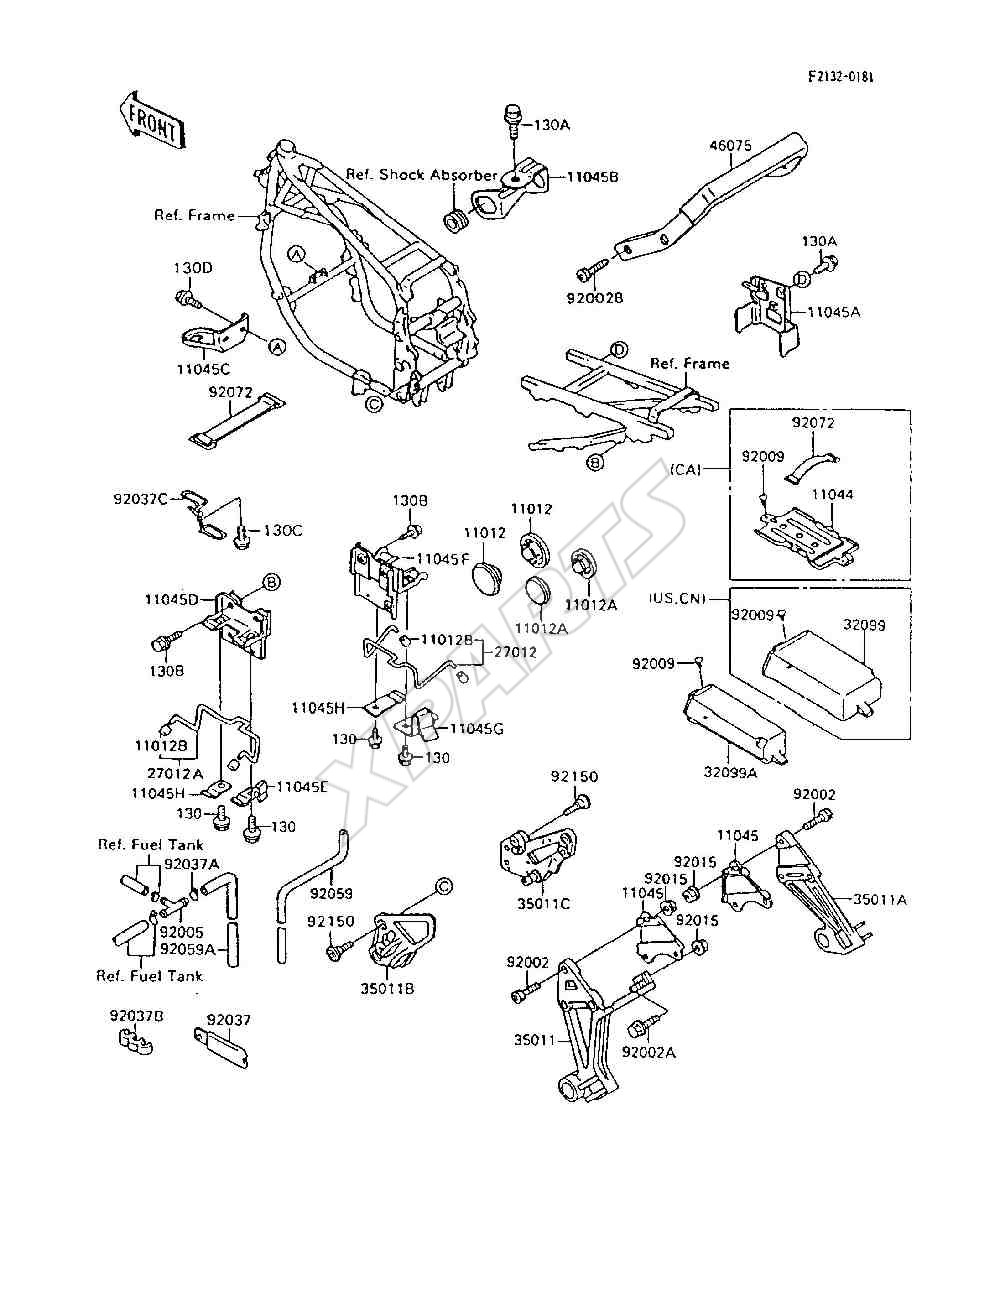 1995 Ninja 600r Zx600 C8 Engine Diagram 1985 900 Picture For Category Battery Case